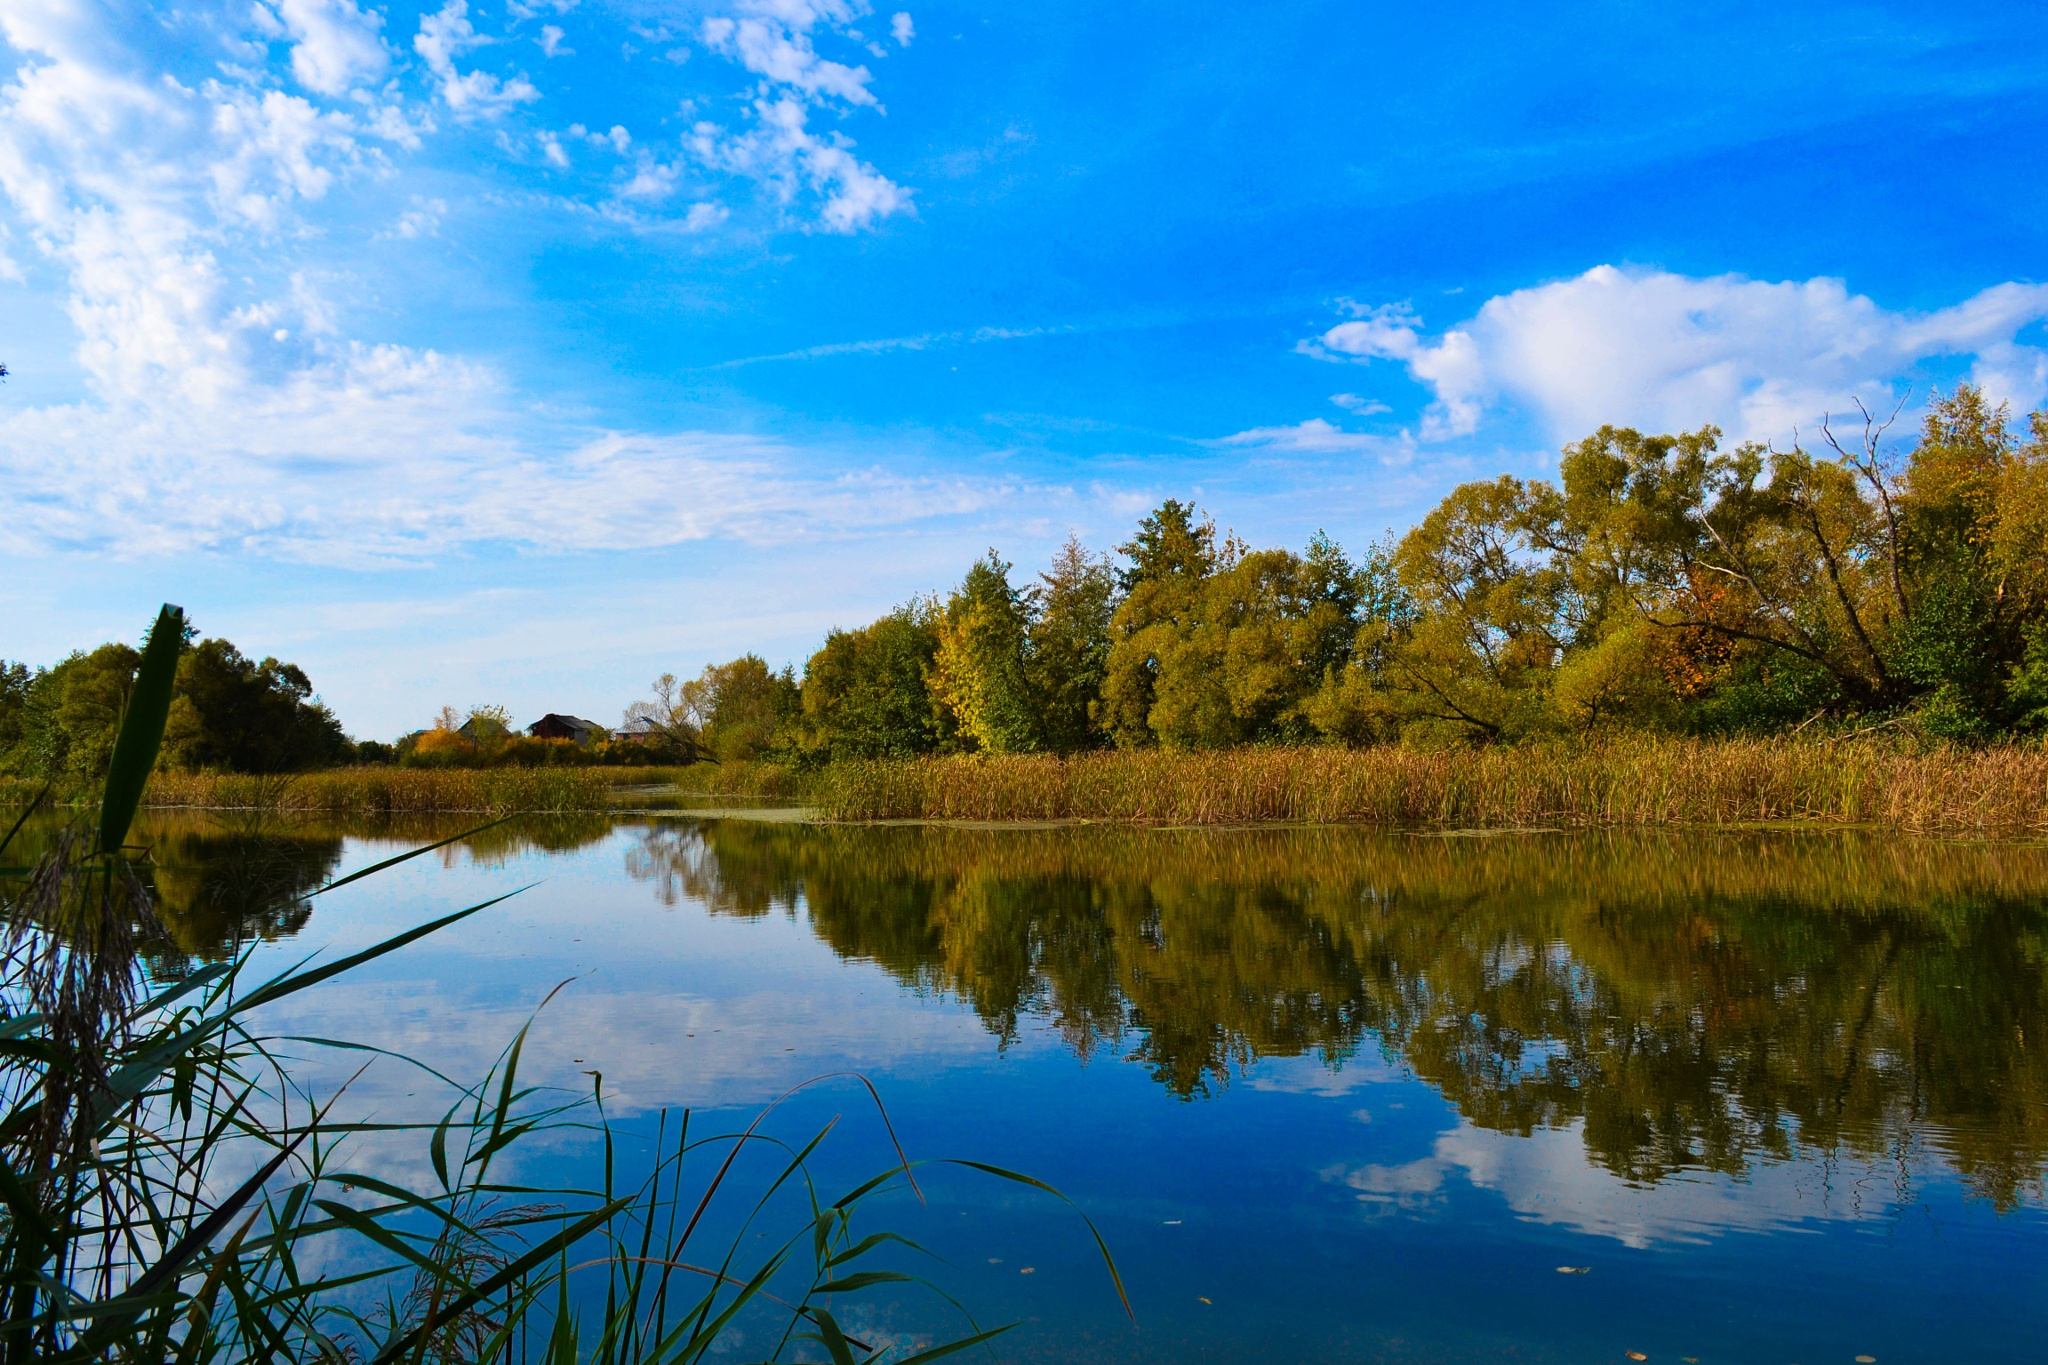 Autumn landscape. The reflection in the water surface of the river. by Andrey Gordeeff